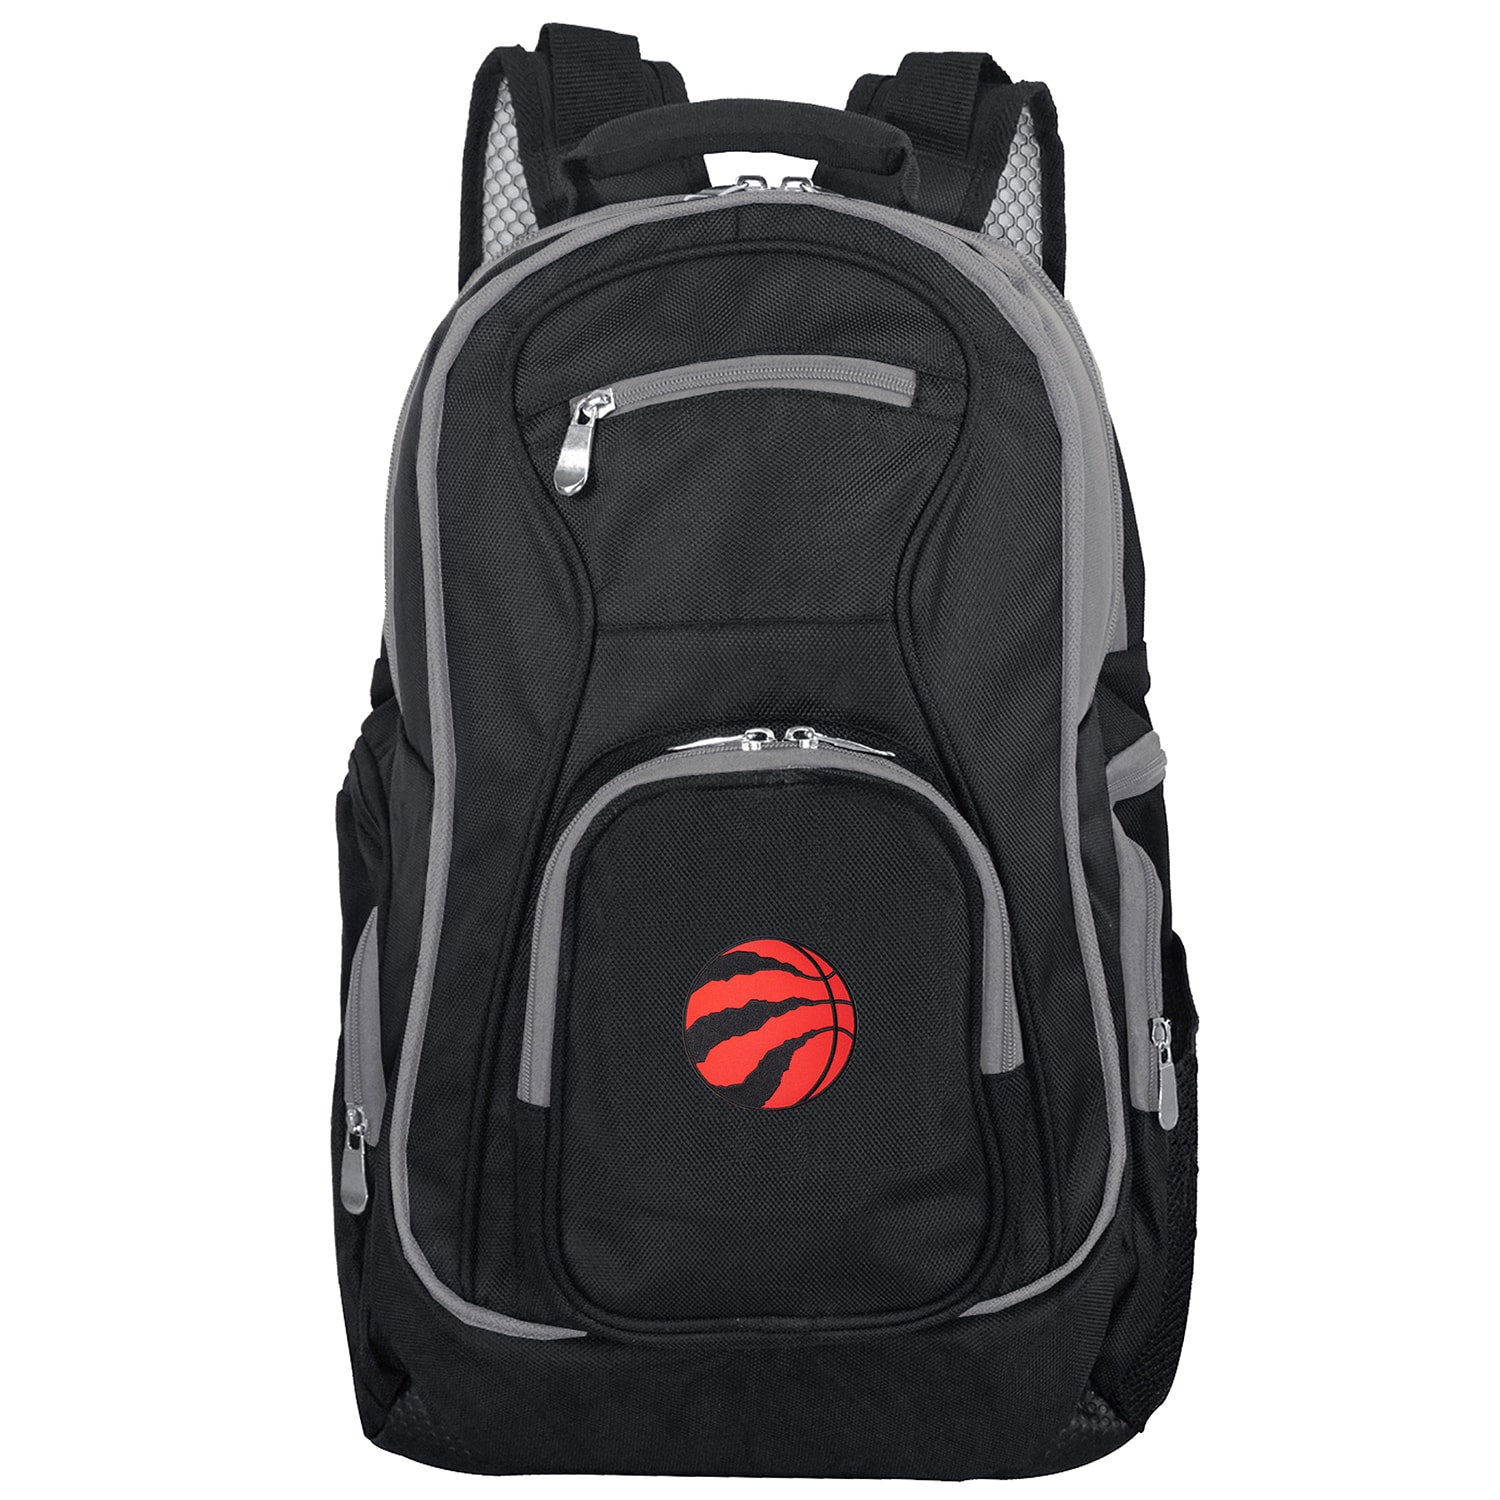 Toronto Raptors Trim Color Laptop Backpack - Black